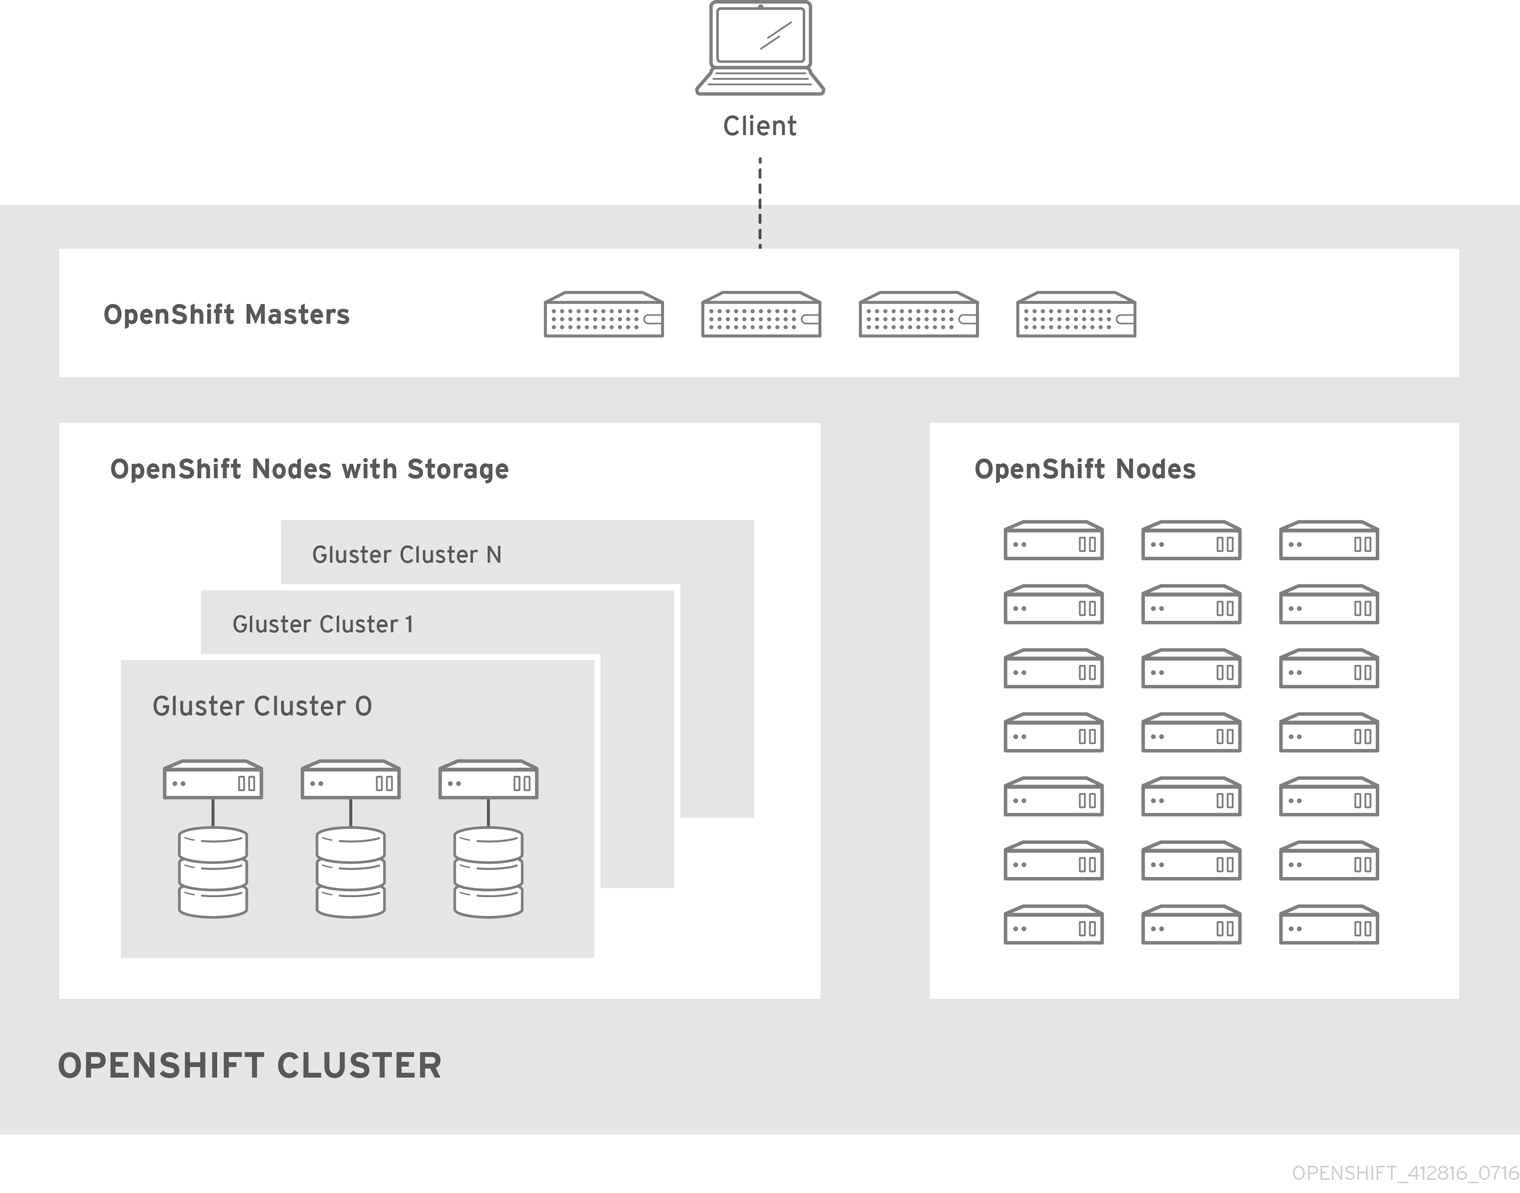 Architecture - Red Hat Gluster Storage Container Converged with OpenShift